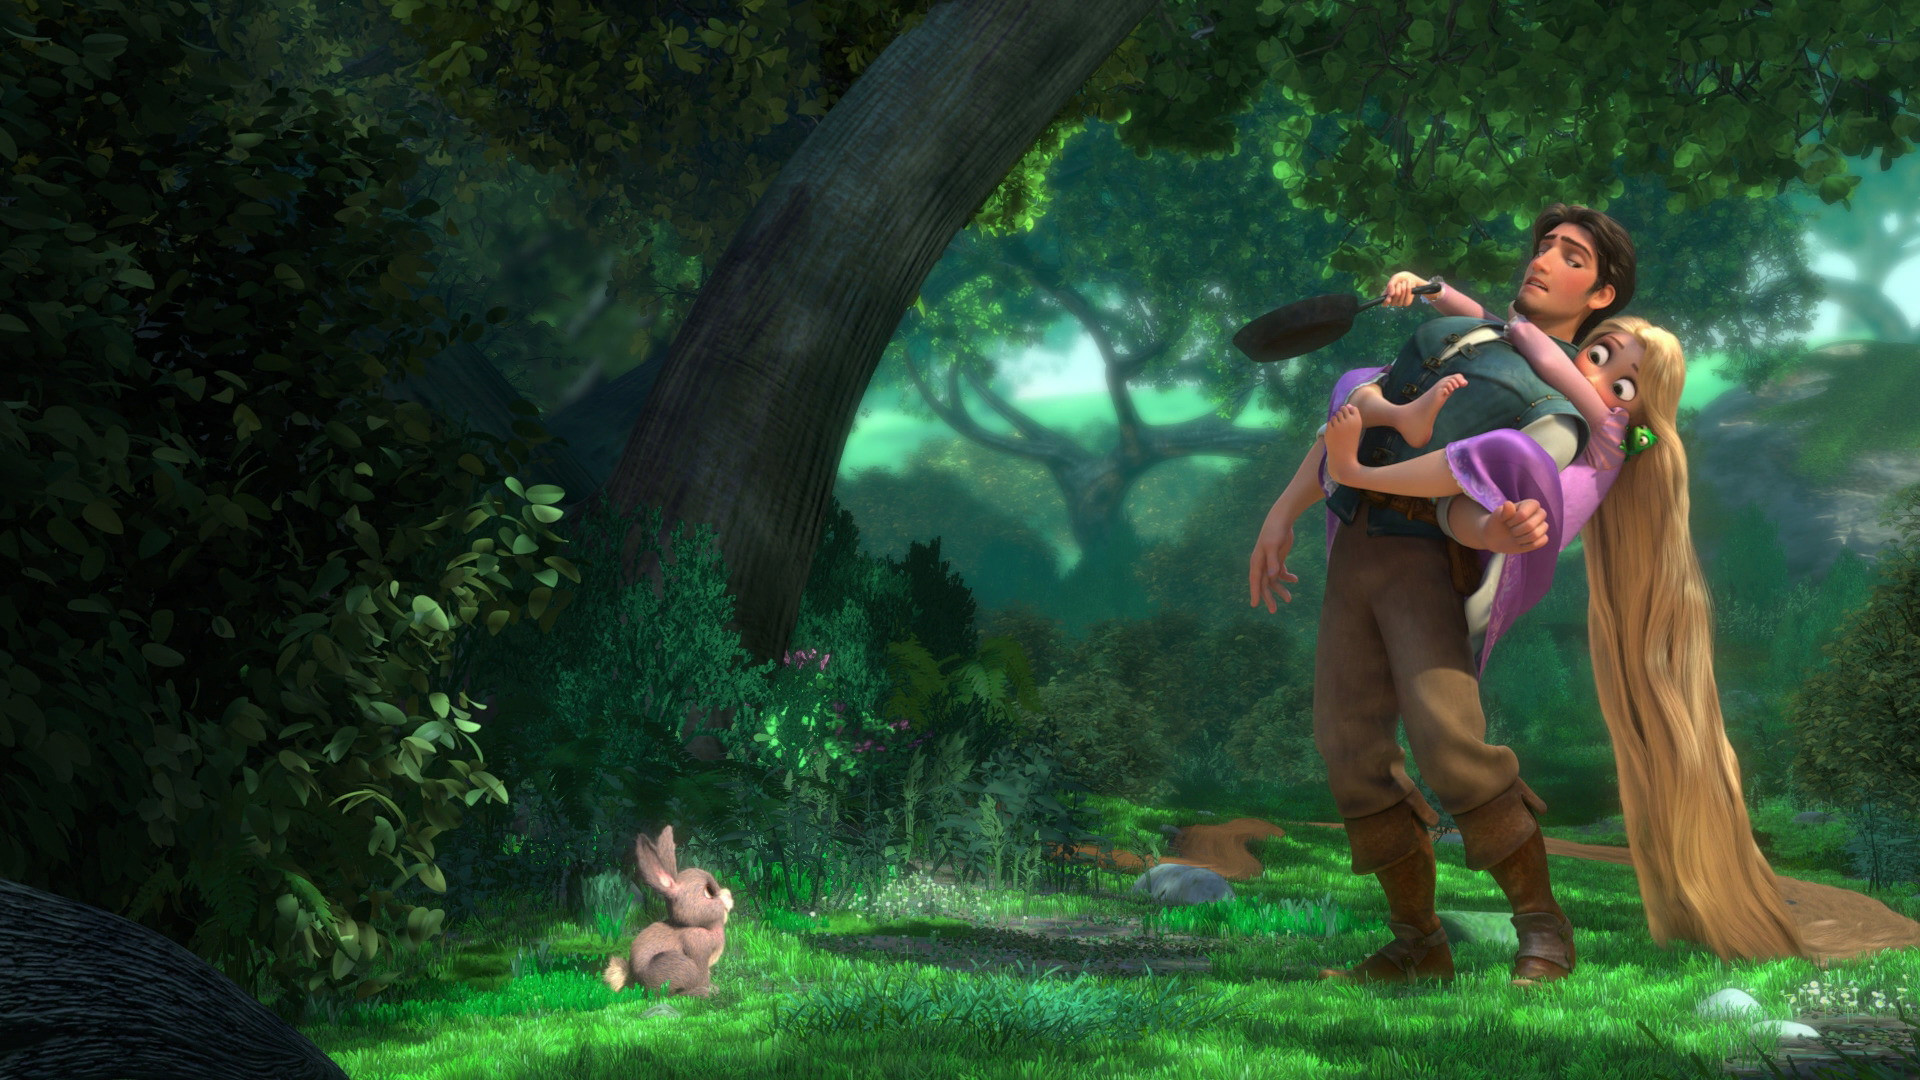 Tangled wallpaper 64 images - Tangled wallpaper ...